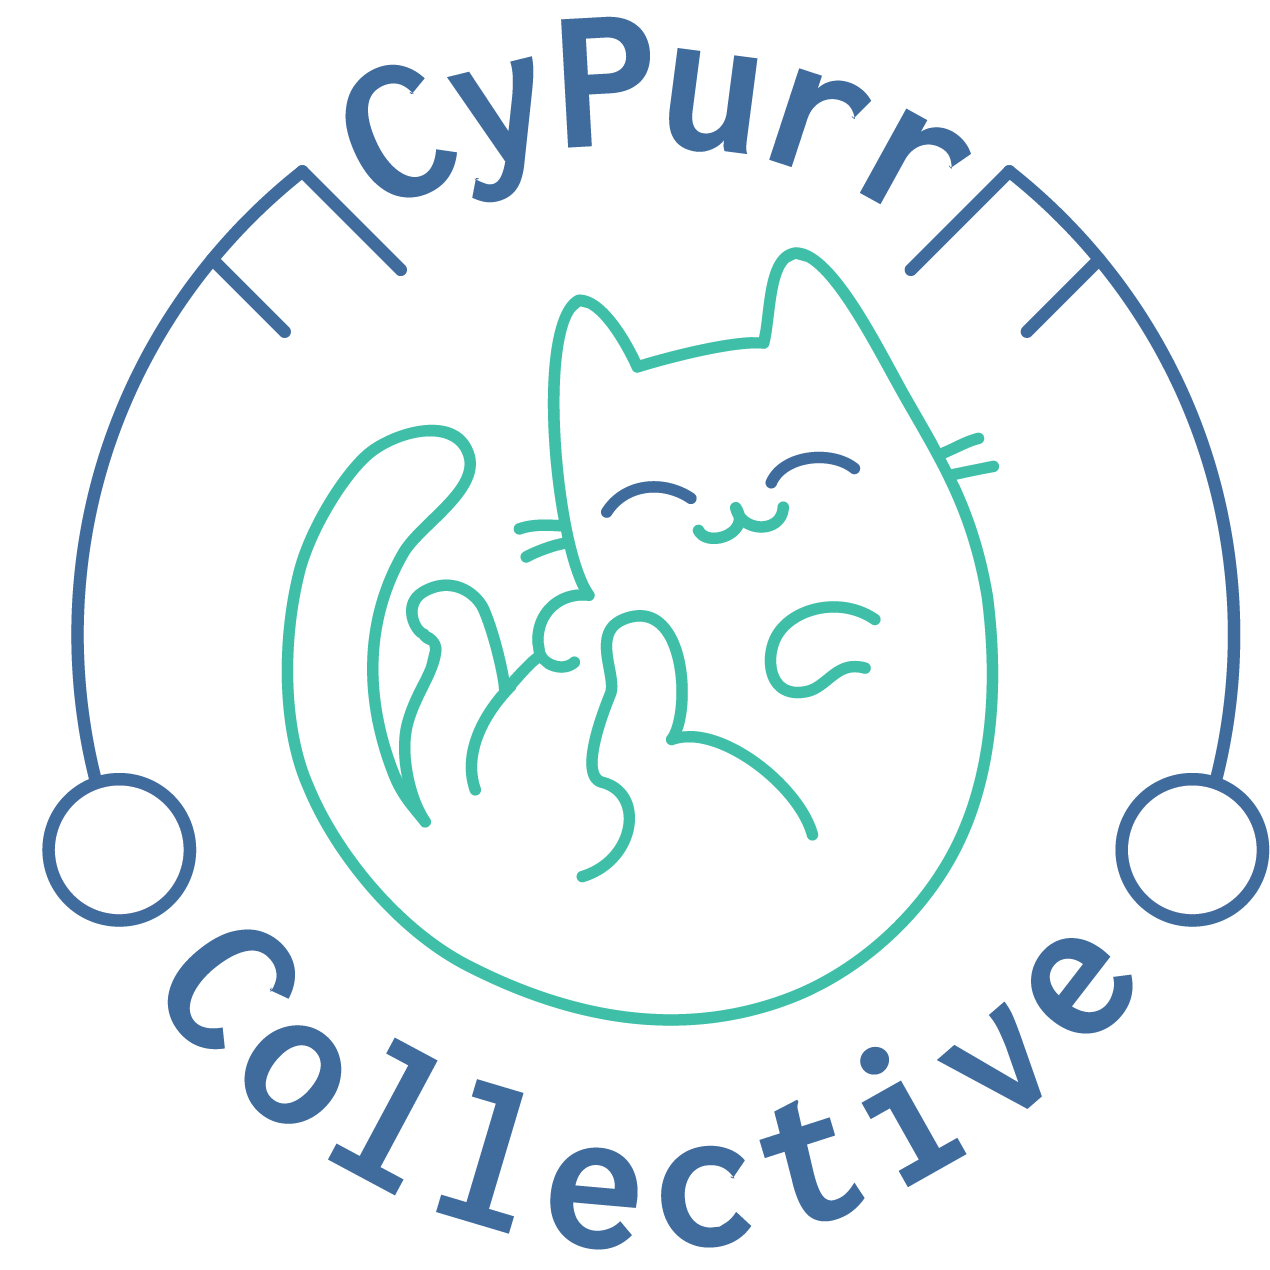 The Cypurr Collective